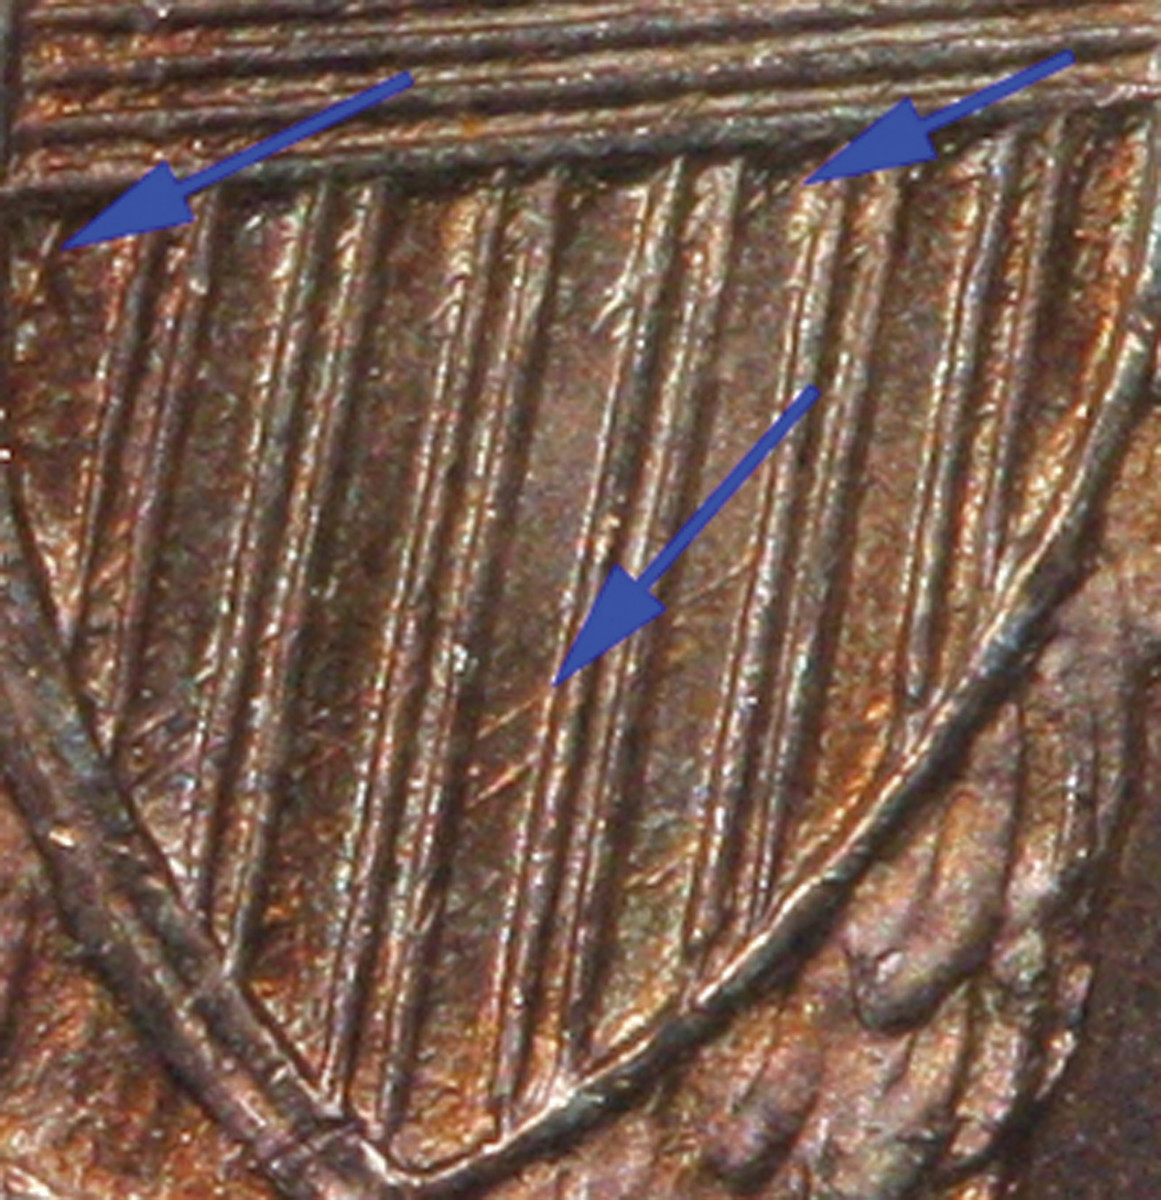 Figure 2. Business Strike Reverse (Briggs' A) Note distinctive die scratches in shield. Image provided by Gene Gardner (2009).